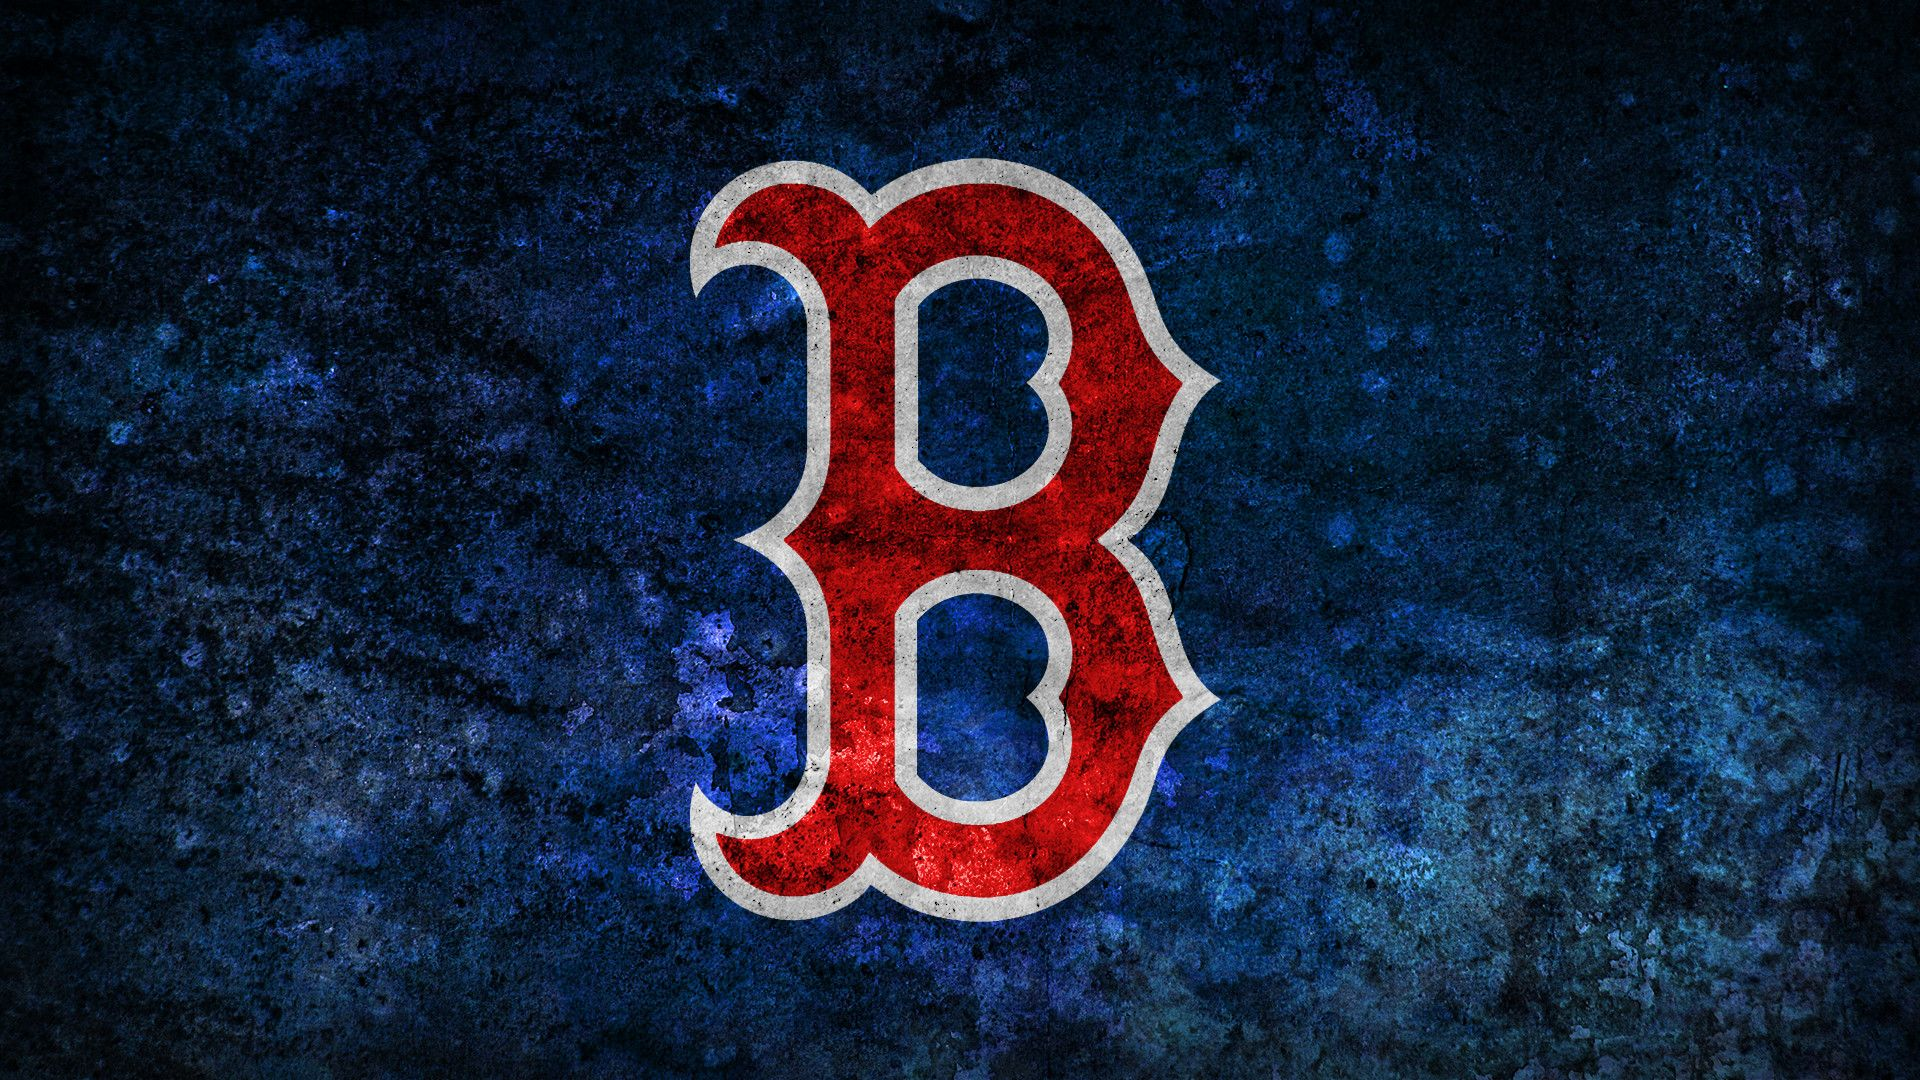 1920x1080 - Boston Red Sox Wallpaper Screensavers 7